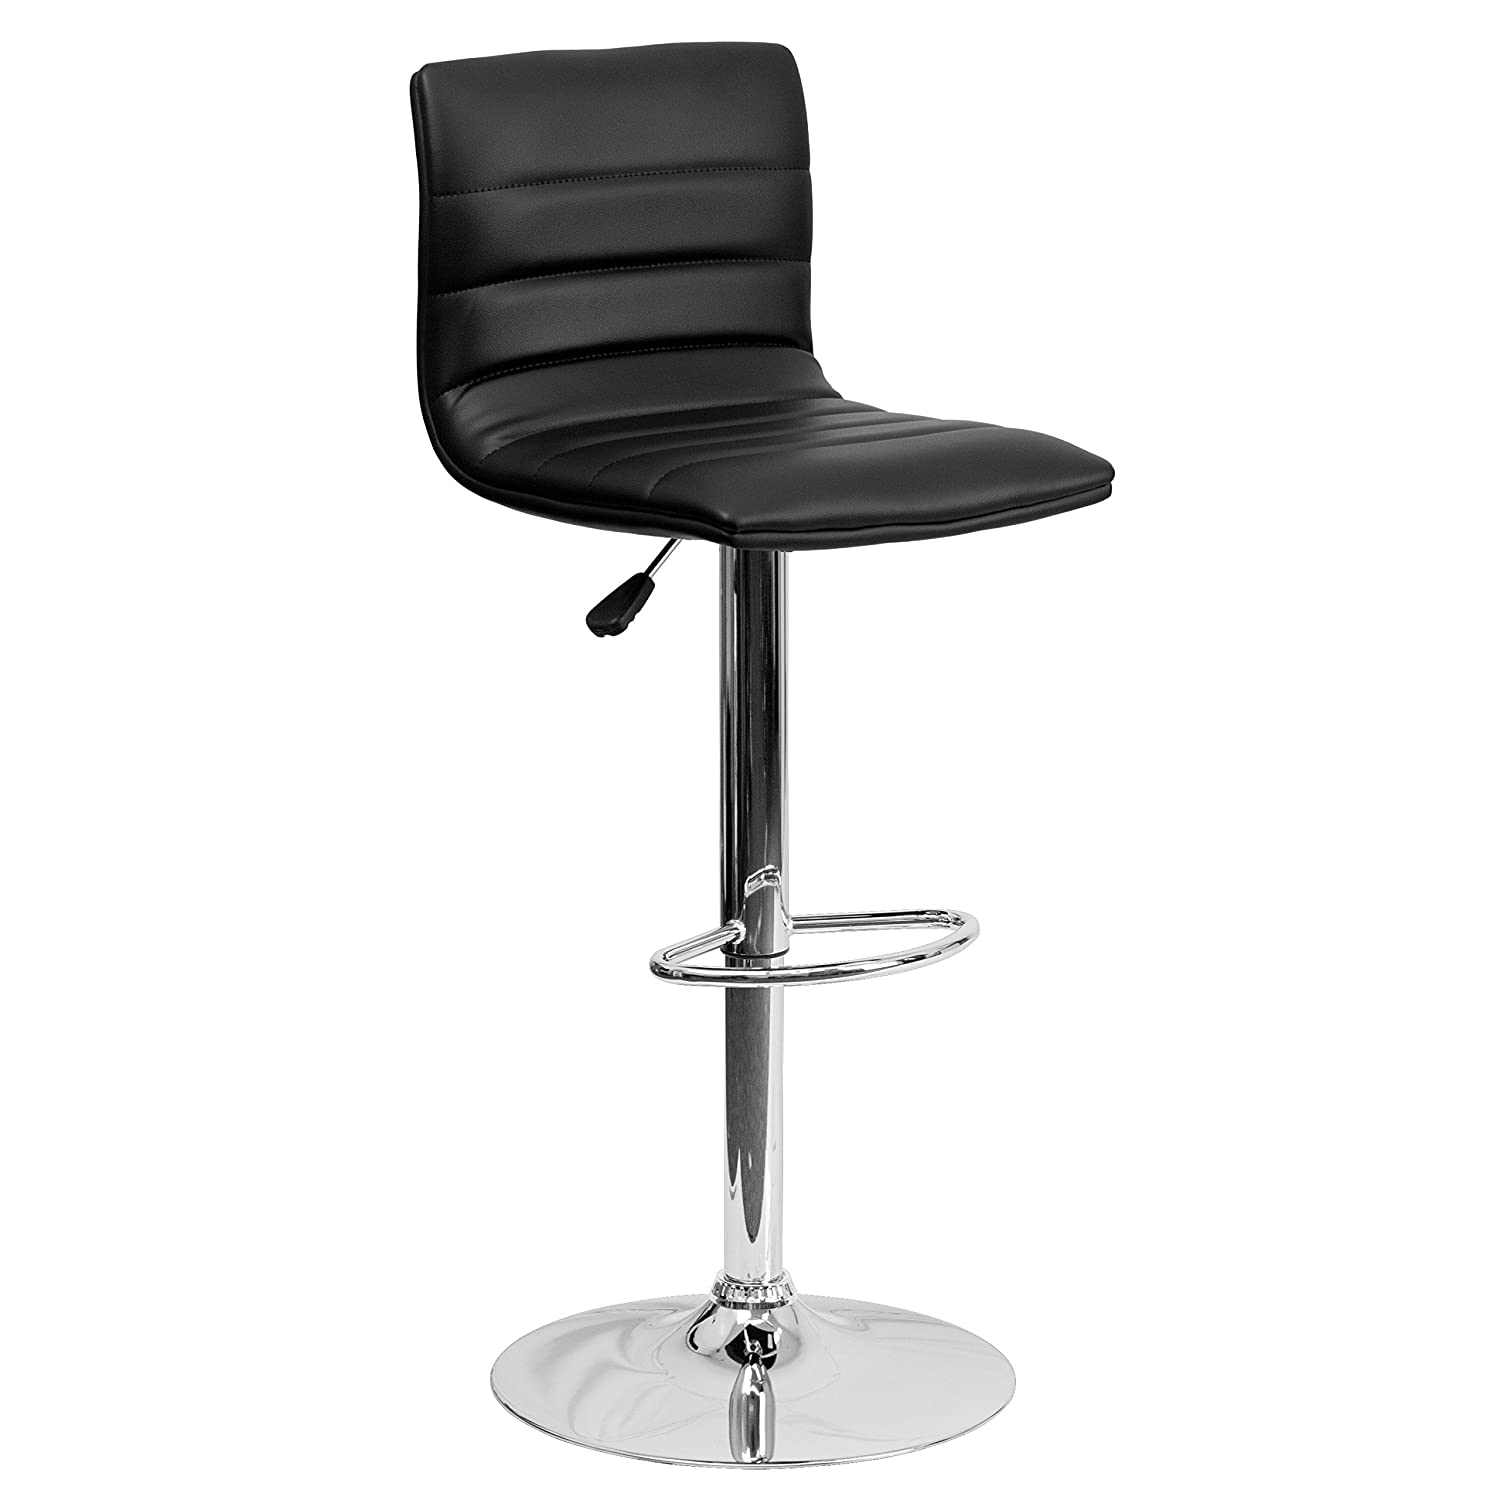 modern swivel bar stools. Amazon.com: Flash Furniture Contemporary Black Vinyl Adjustable Height Barstool With Chrome Base: Kitchen \u0026 Dining Modern Swivel Bar Stools S